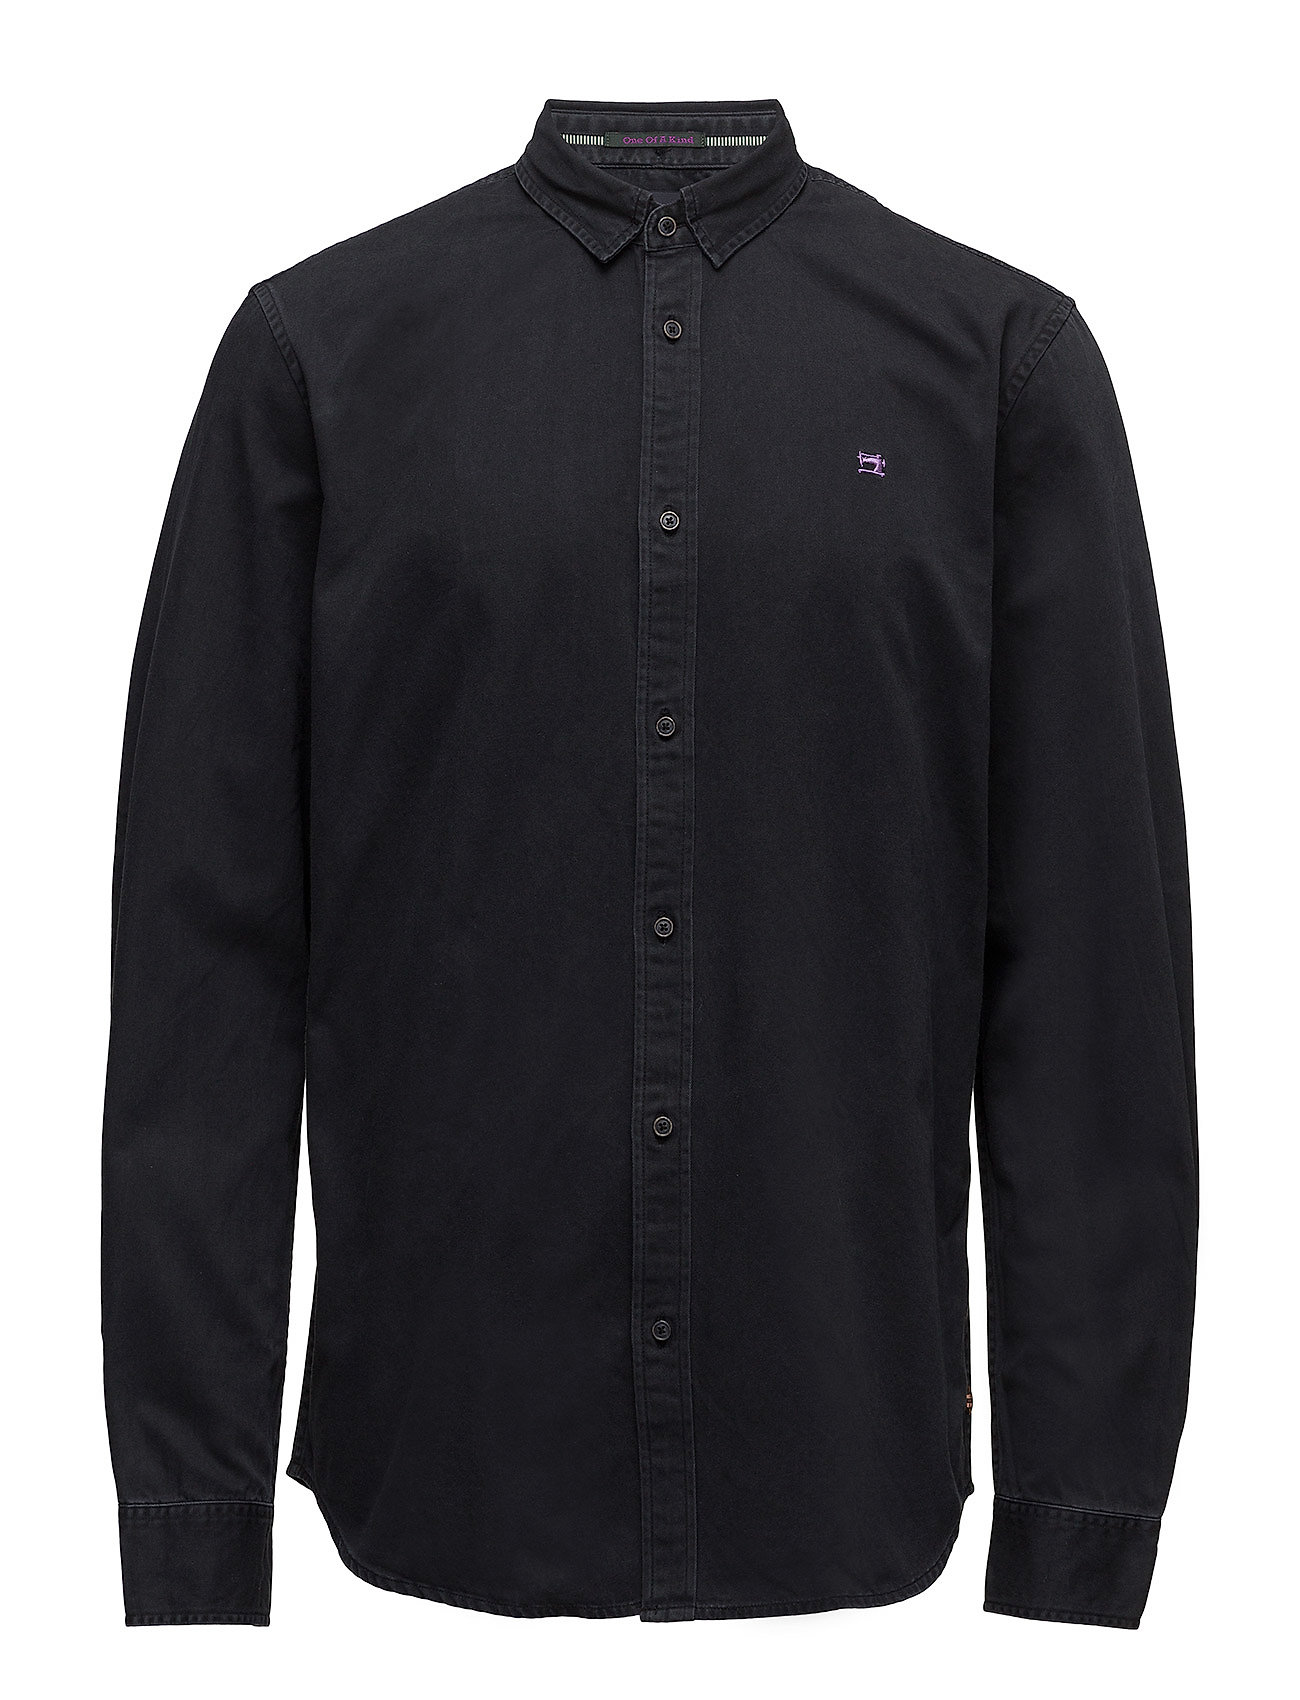 Relaxefit Longsleeve Shirt In Classic Twill Quality